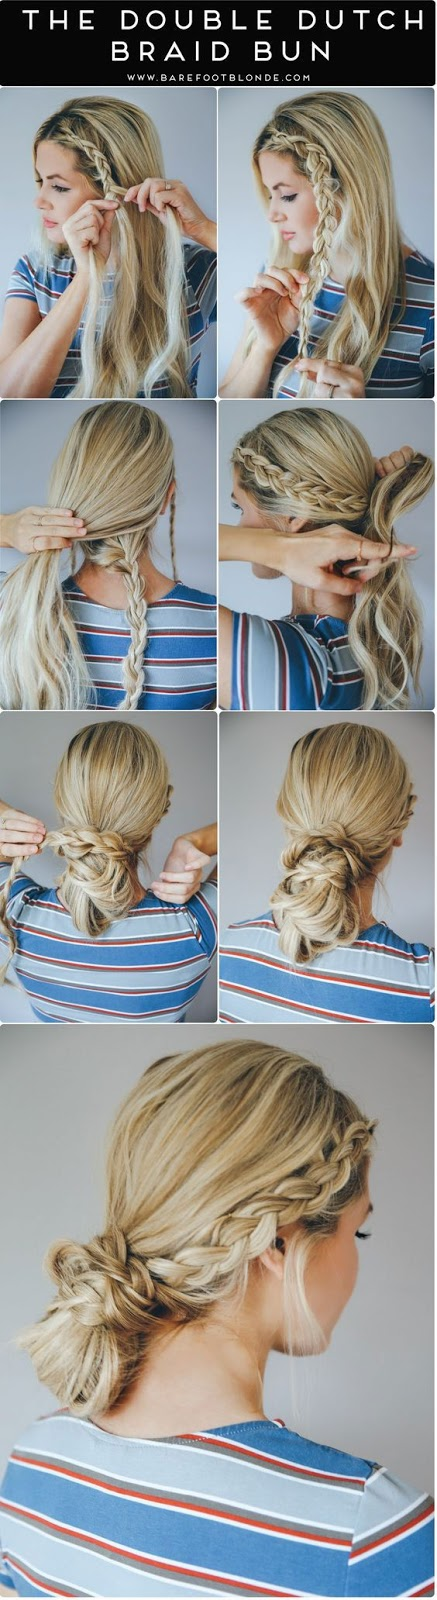 The Double Dutch Braid Bun